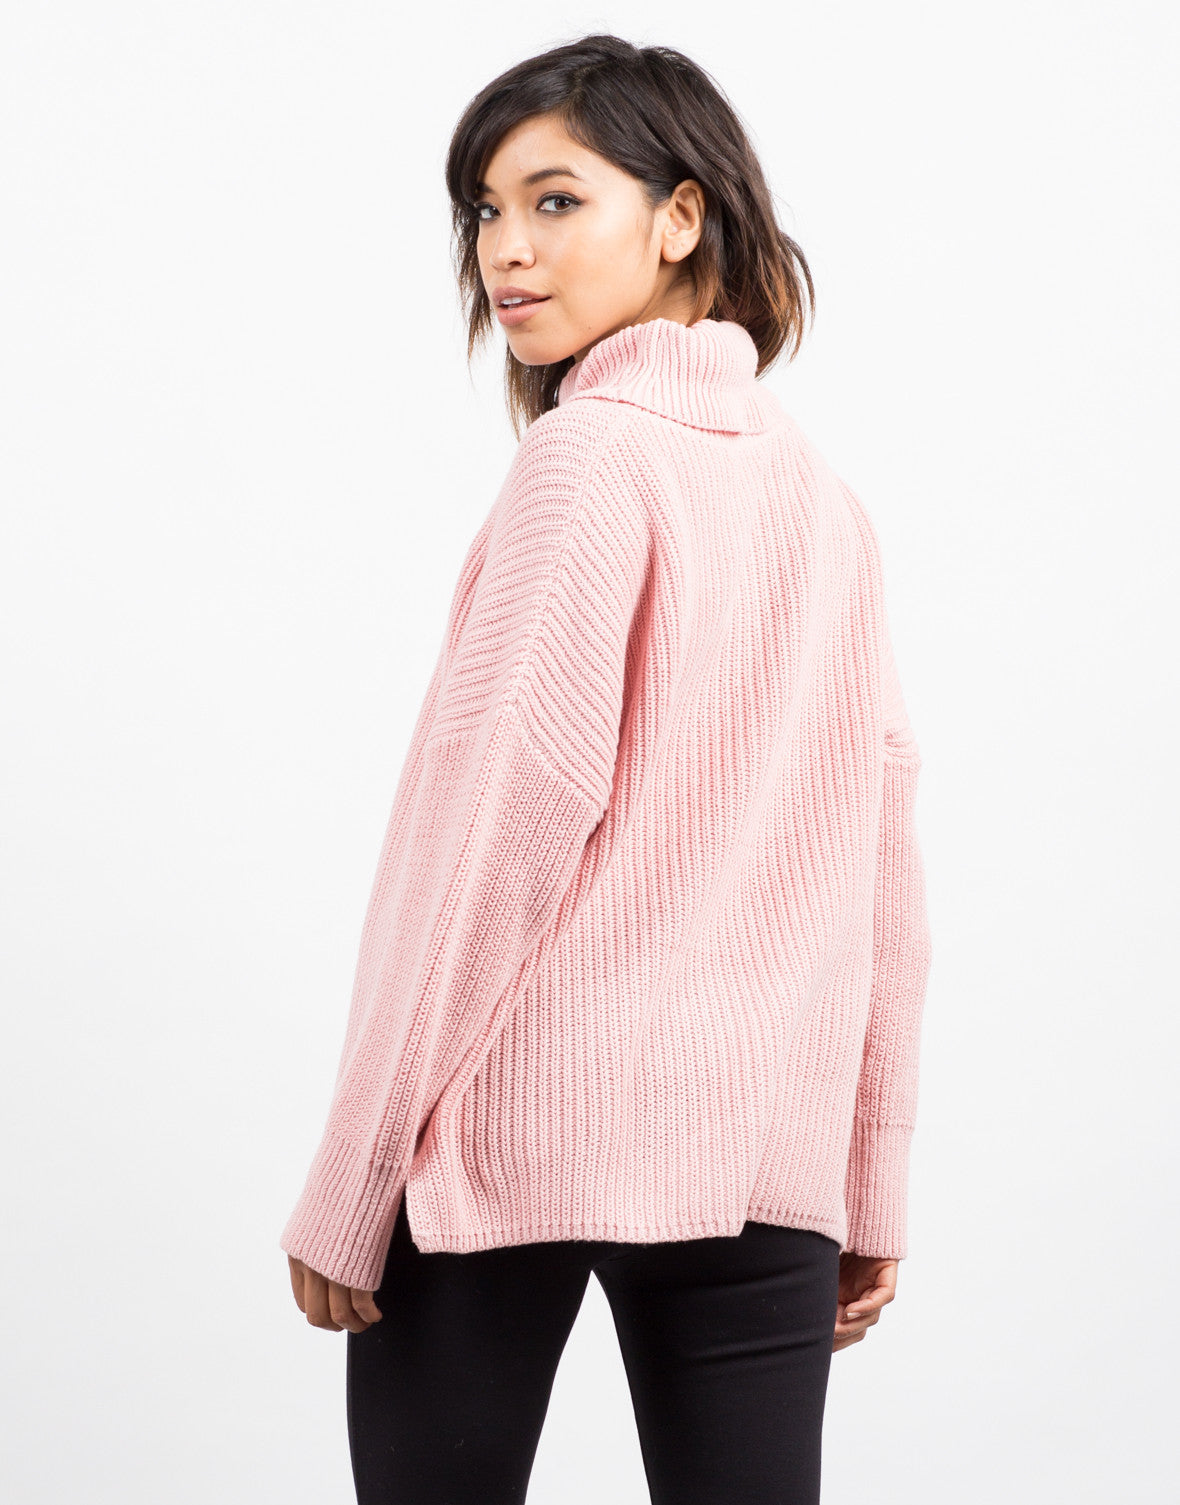 Back View of Oversized Turtleneck Sweater